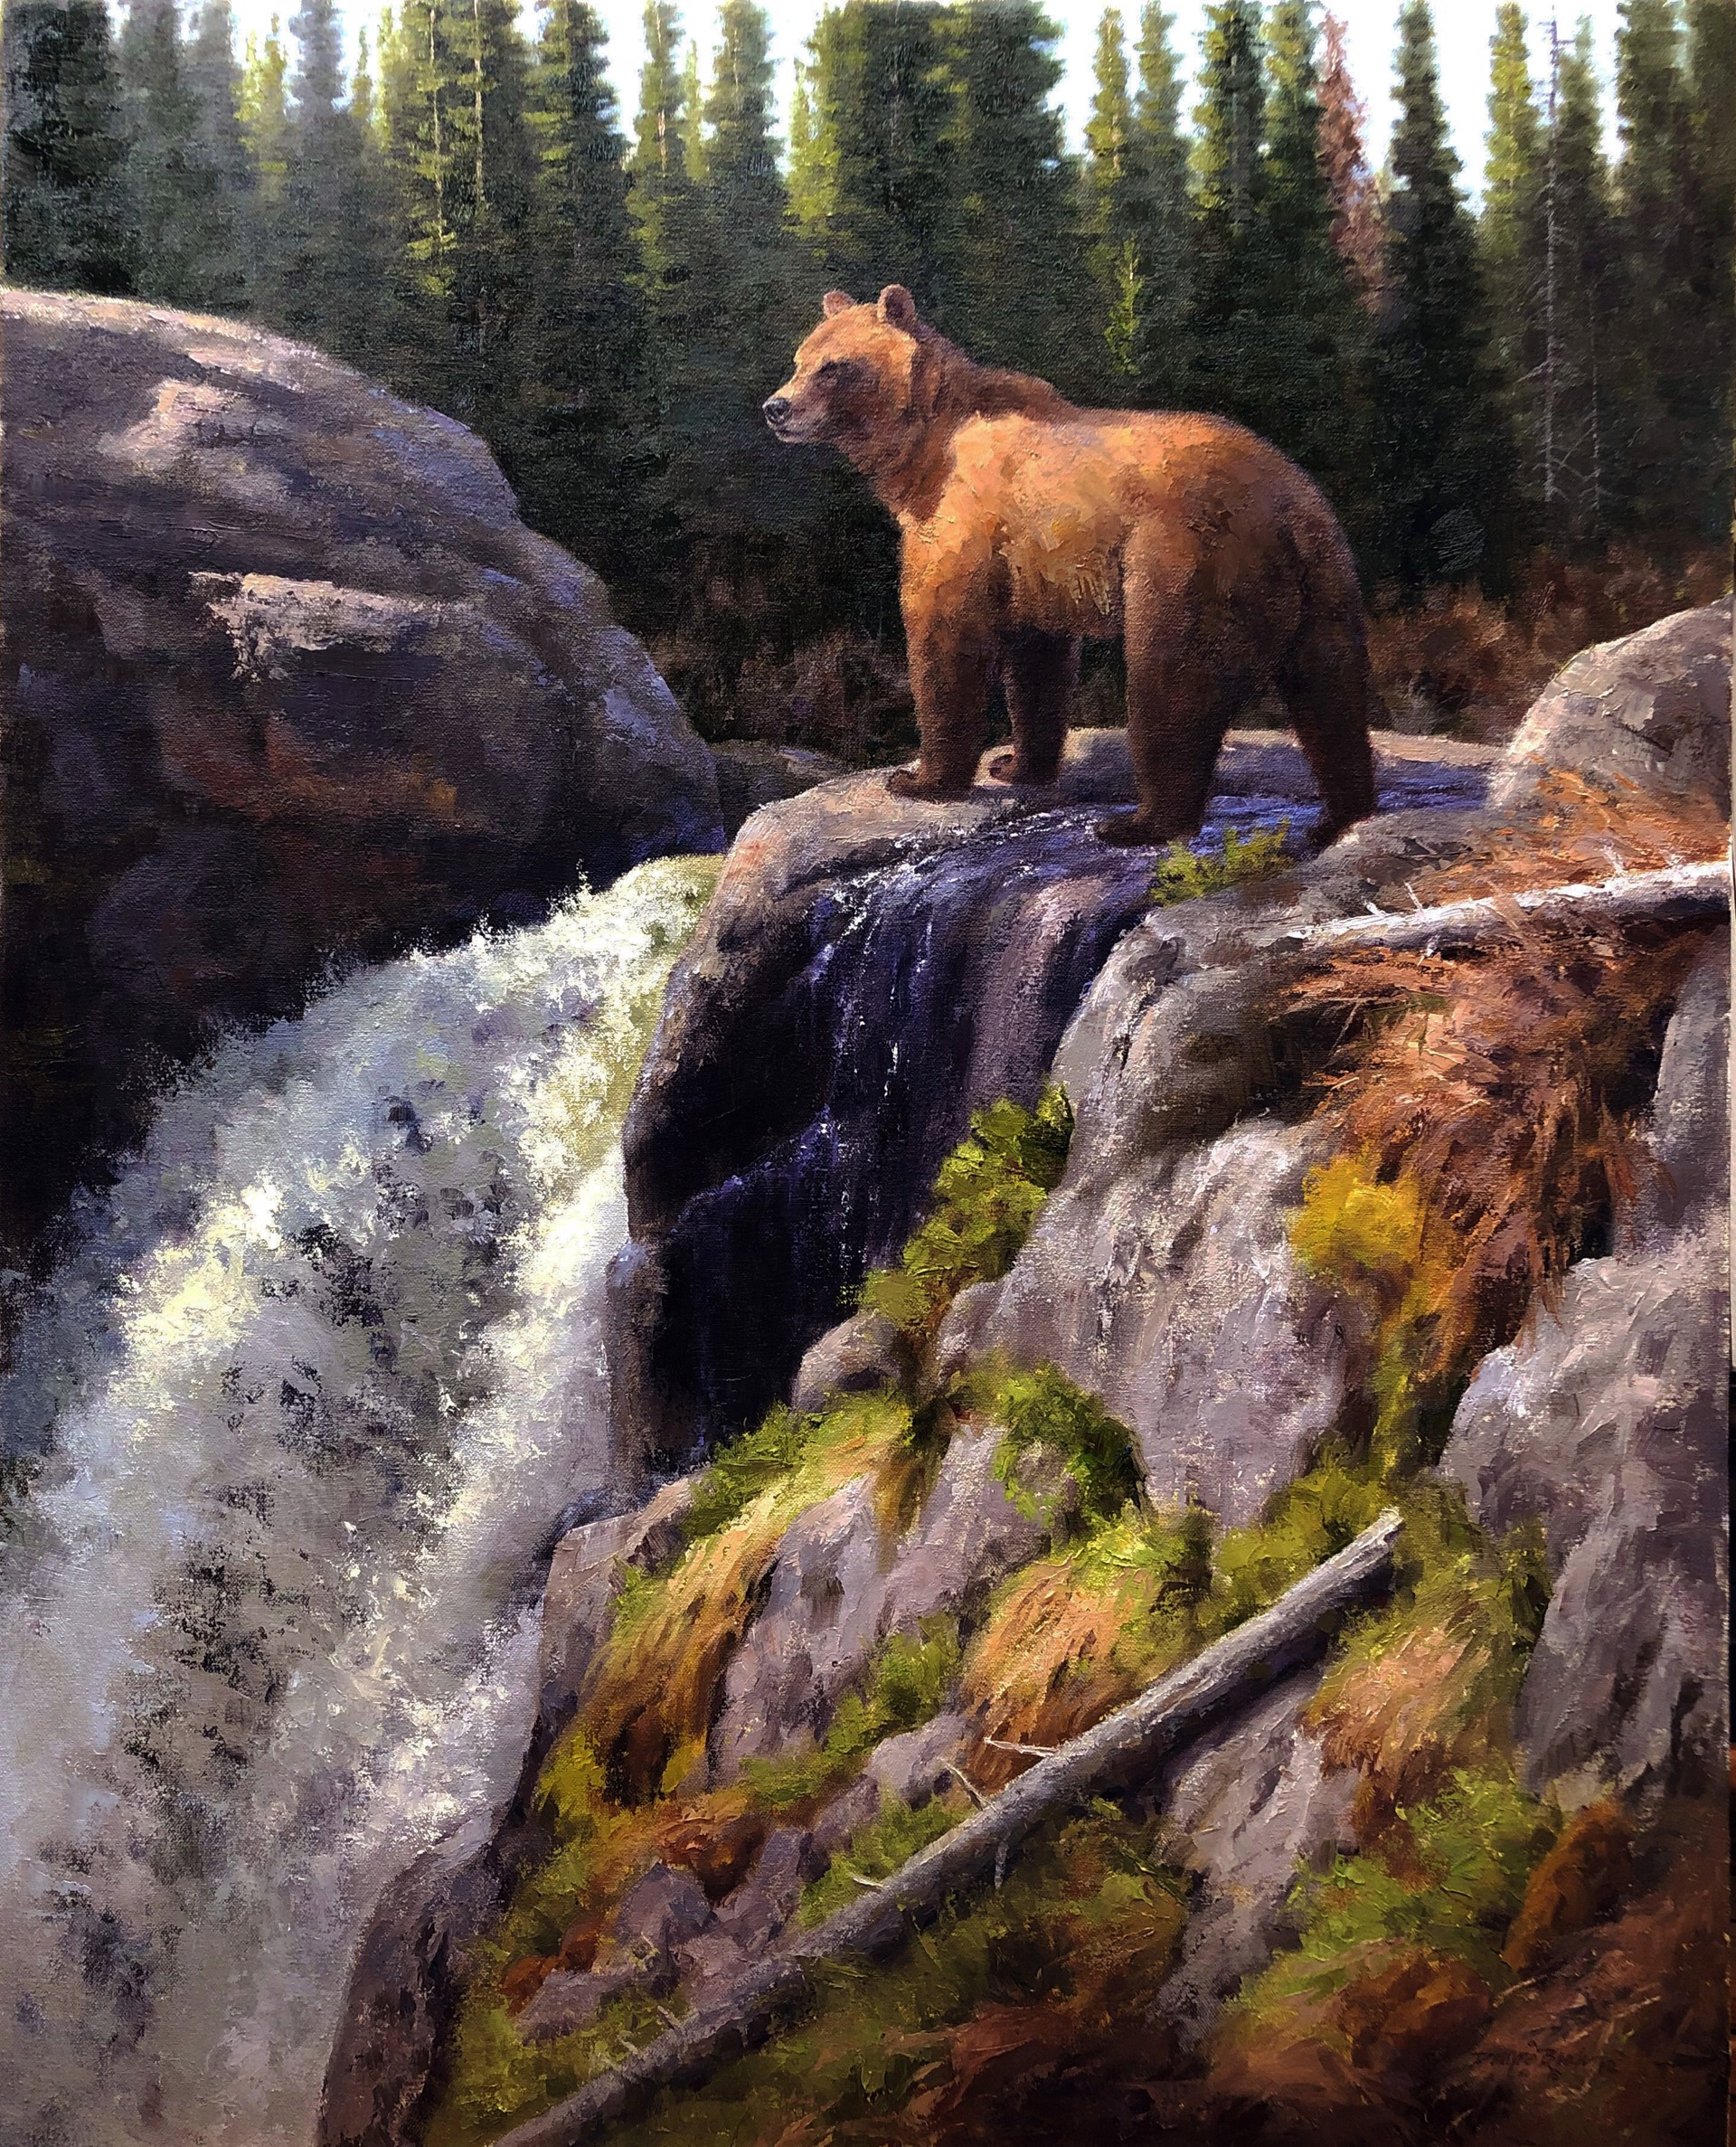 Above the Falls by Dwayne Brech